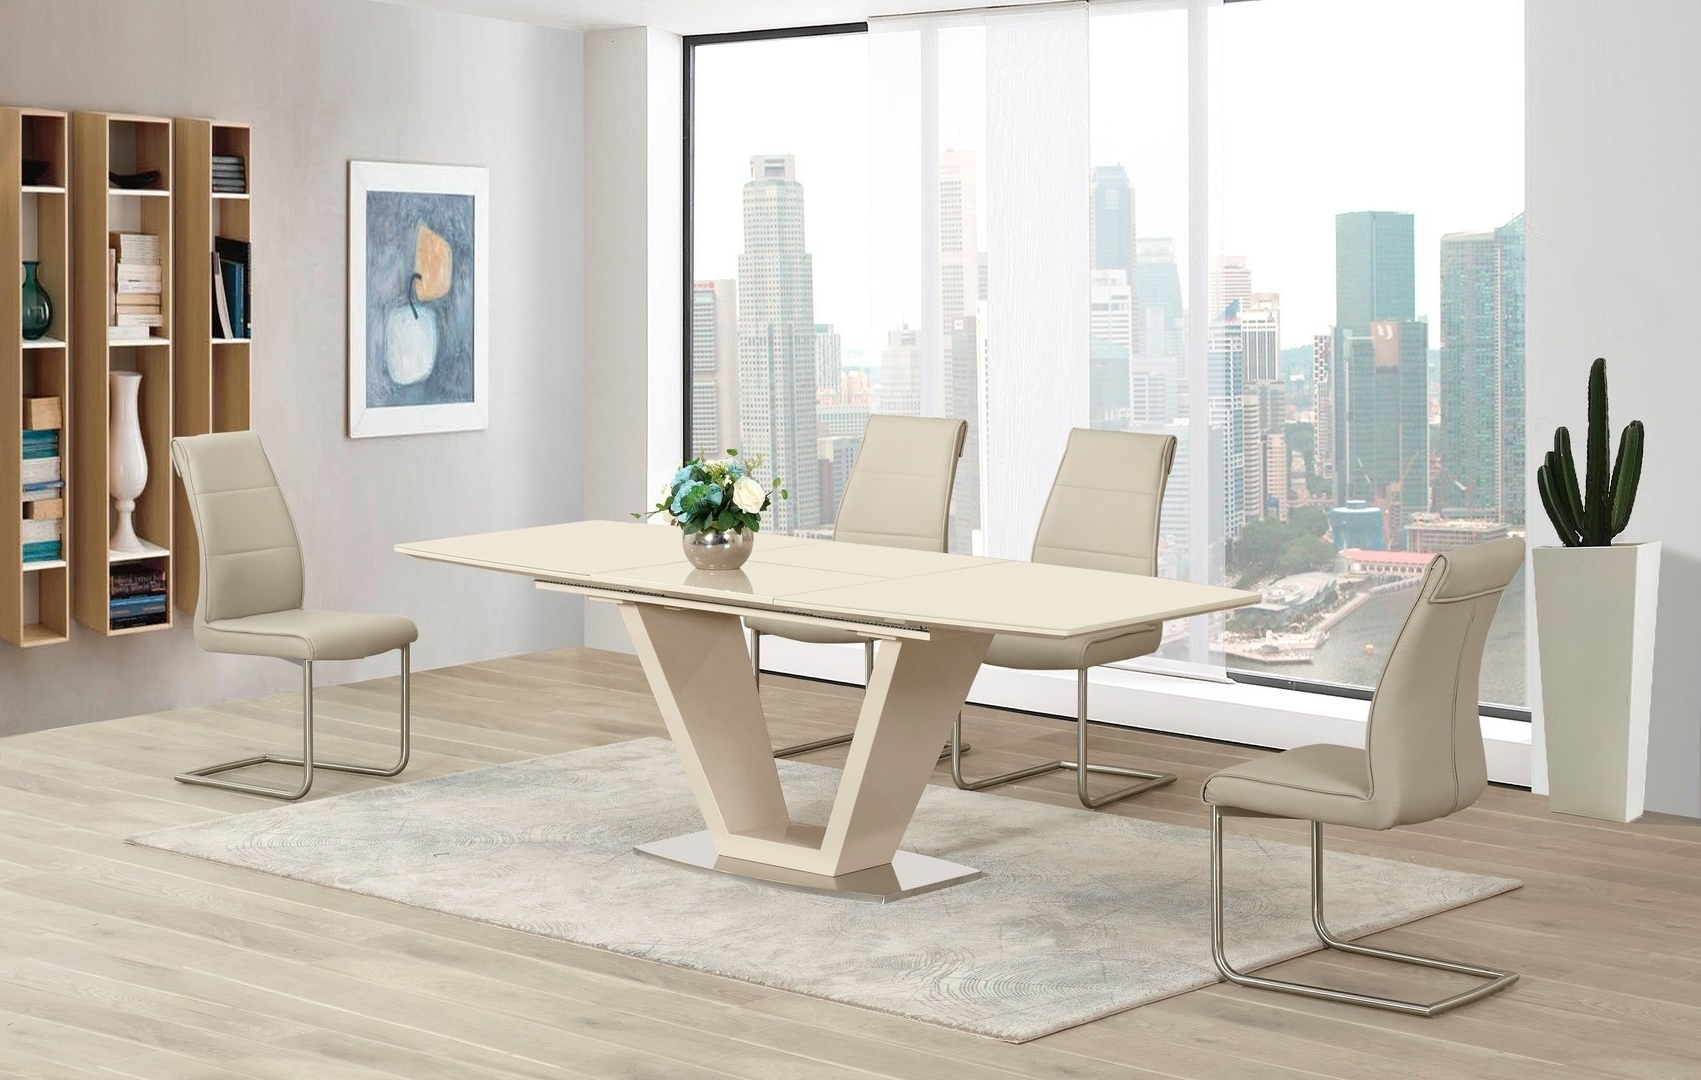 Cream Gloss Dining Tables And Chairs With Well Known Cream Extending Glass High Gloss Dining Table And 4 Taupe Chairs Set (View 7 of 25)